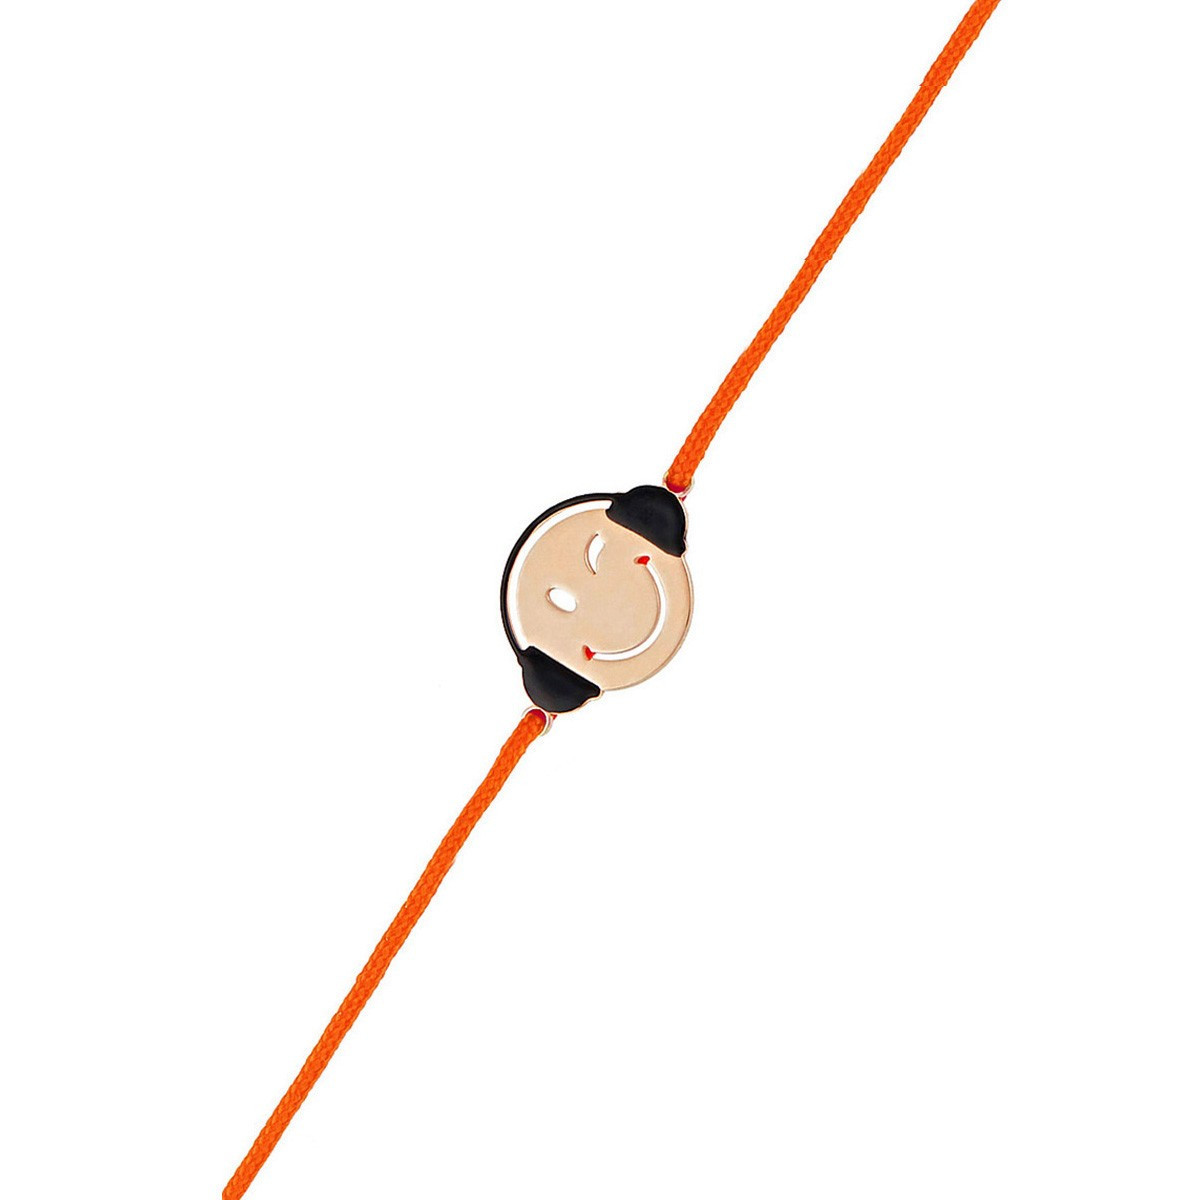 Bracelet Femme Smiley Mélomane Cordon Orange En Vermeil Rose